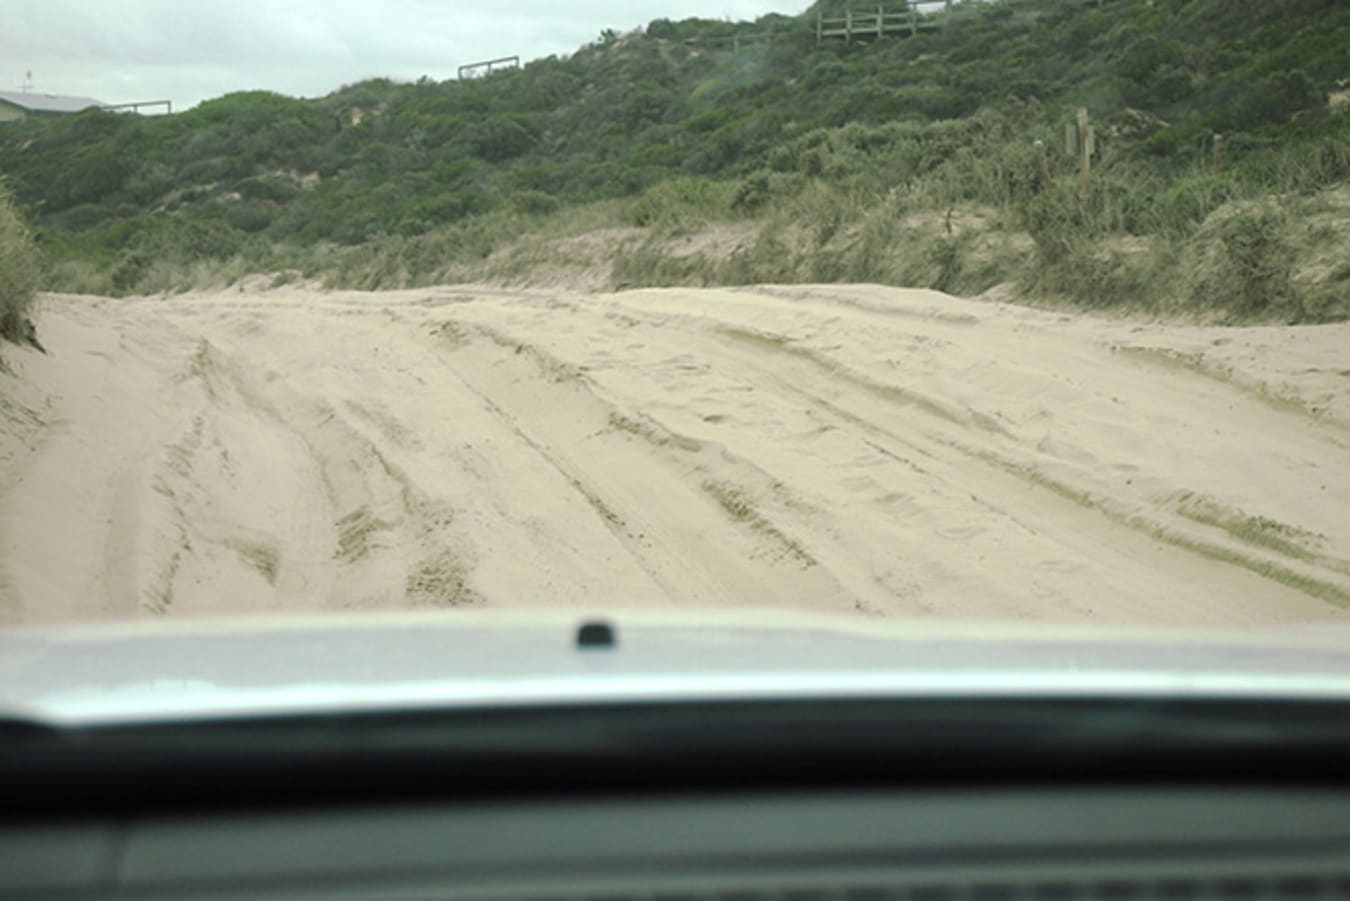 Jeep Cherokee view out of windscreen